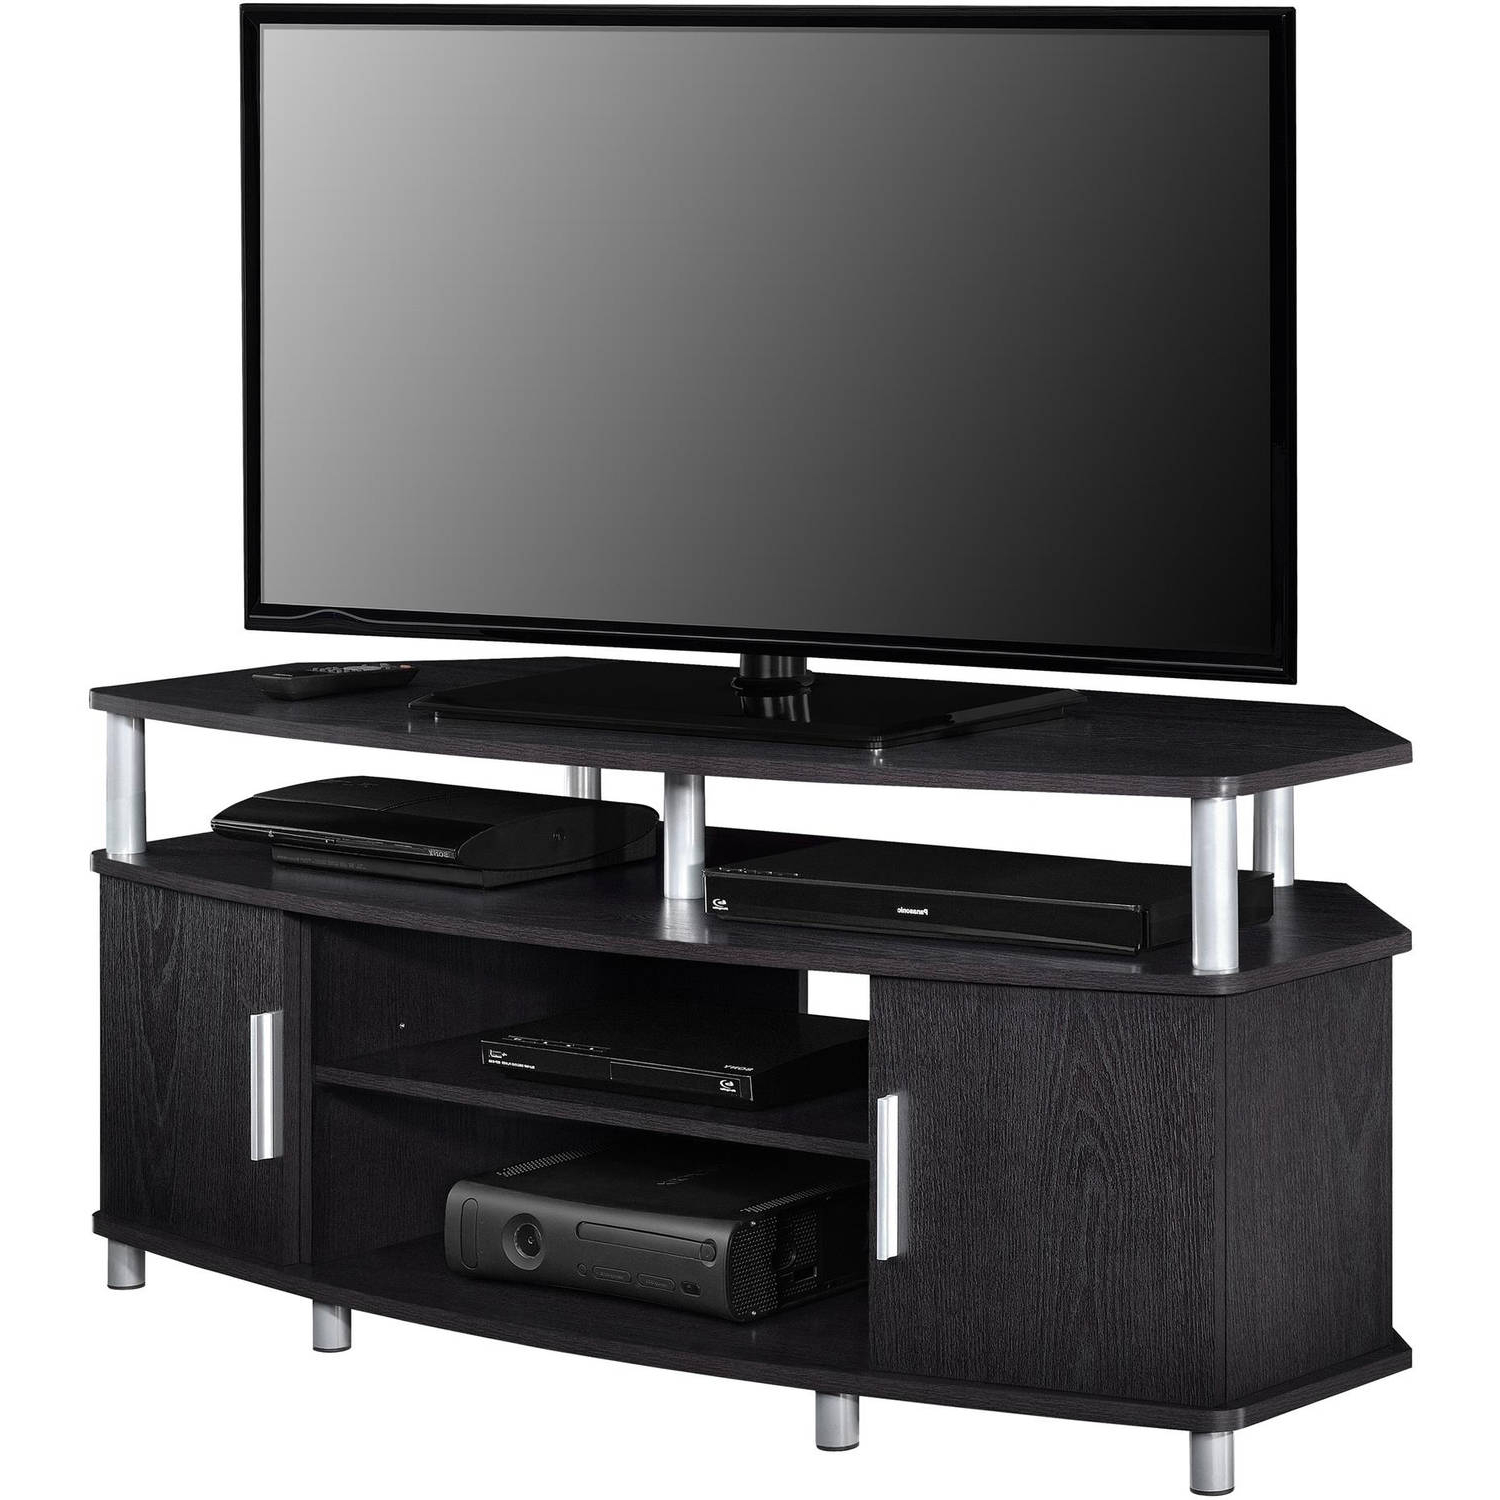 Flat Screen Tv Stands Corner Units With Regard To 2017 New Tv Stands For Flat Screens 55 Media Console Black Corner Living (View 11 of 20)